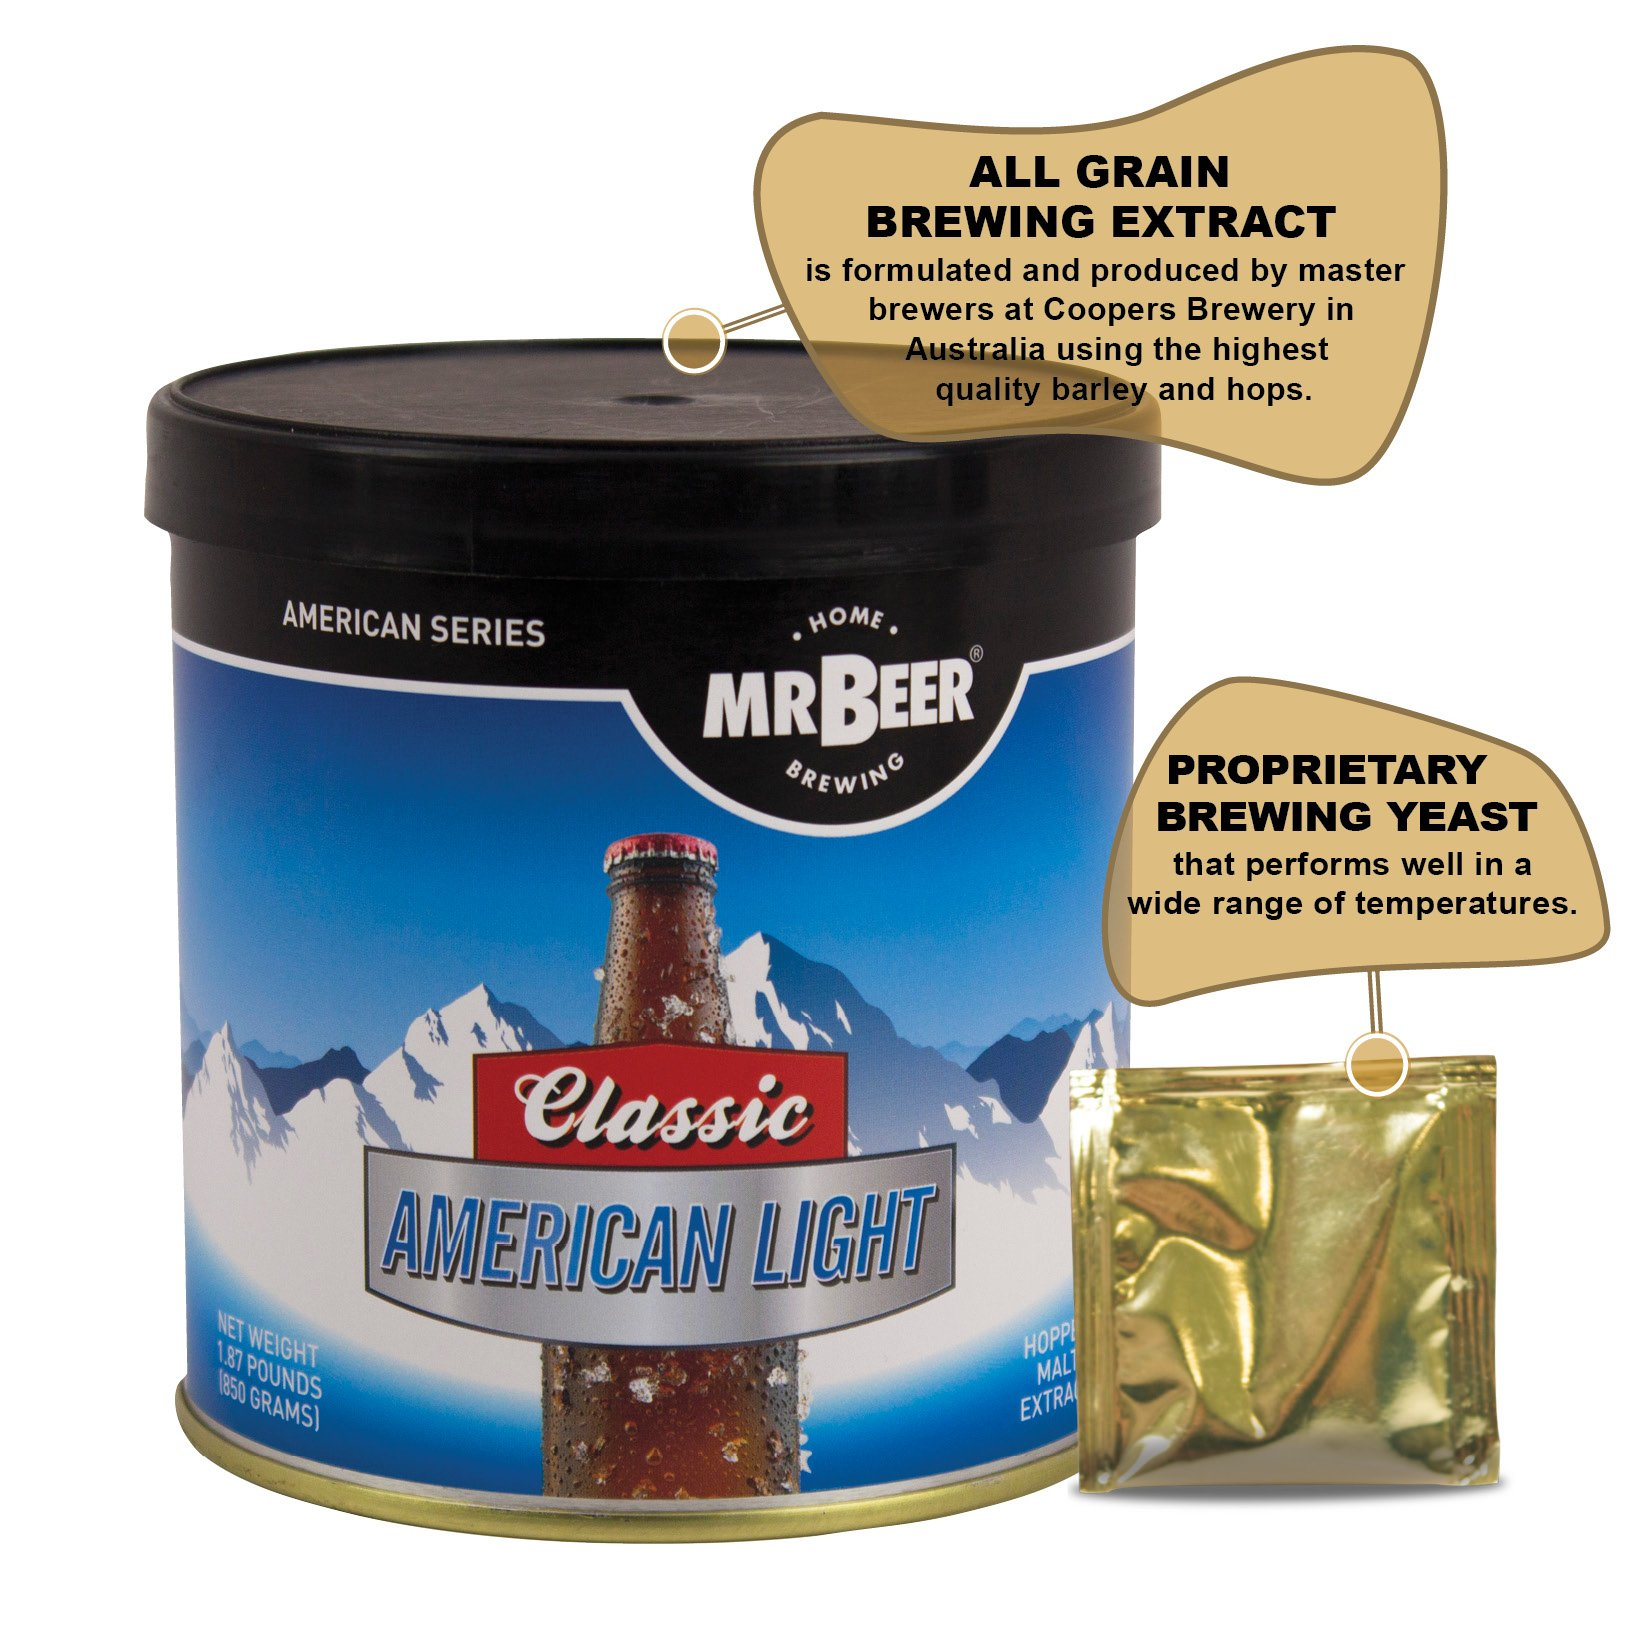 Mr. Beer Classic American Light 2 Gallon Homebrewing Craft Beer Making Refill Kit with Sanitizer, Yeast and All Grain Brewing Extract by Mr. Beer (Image #6)